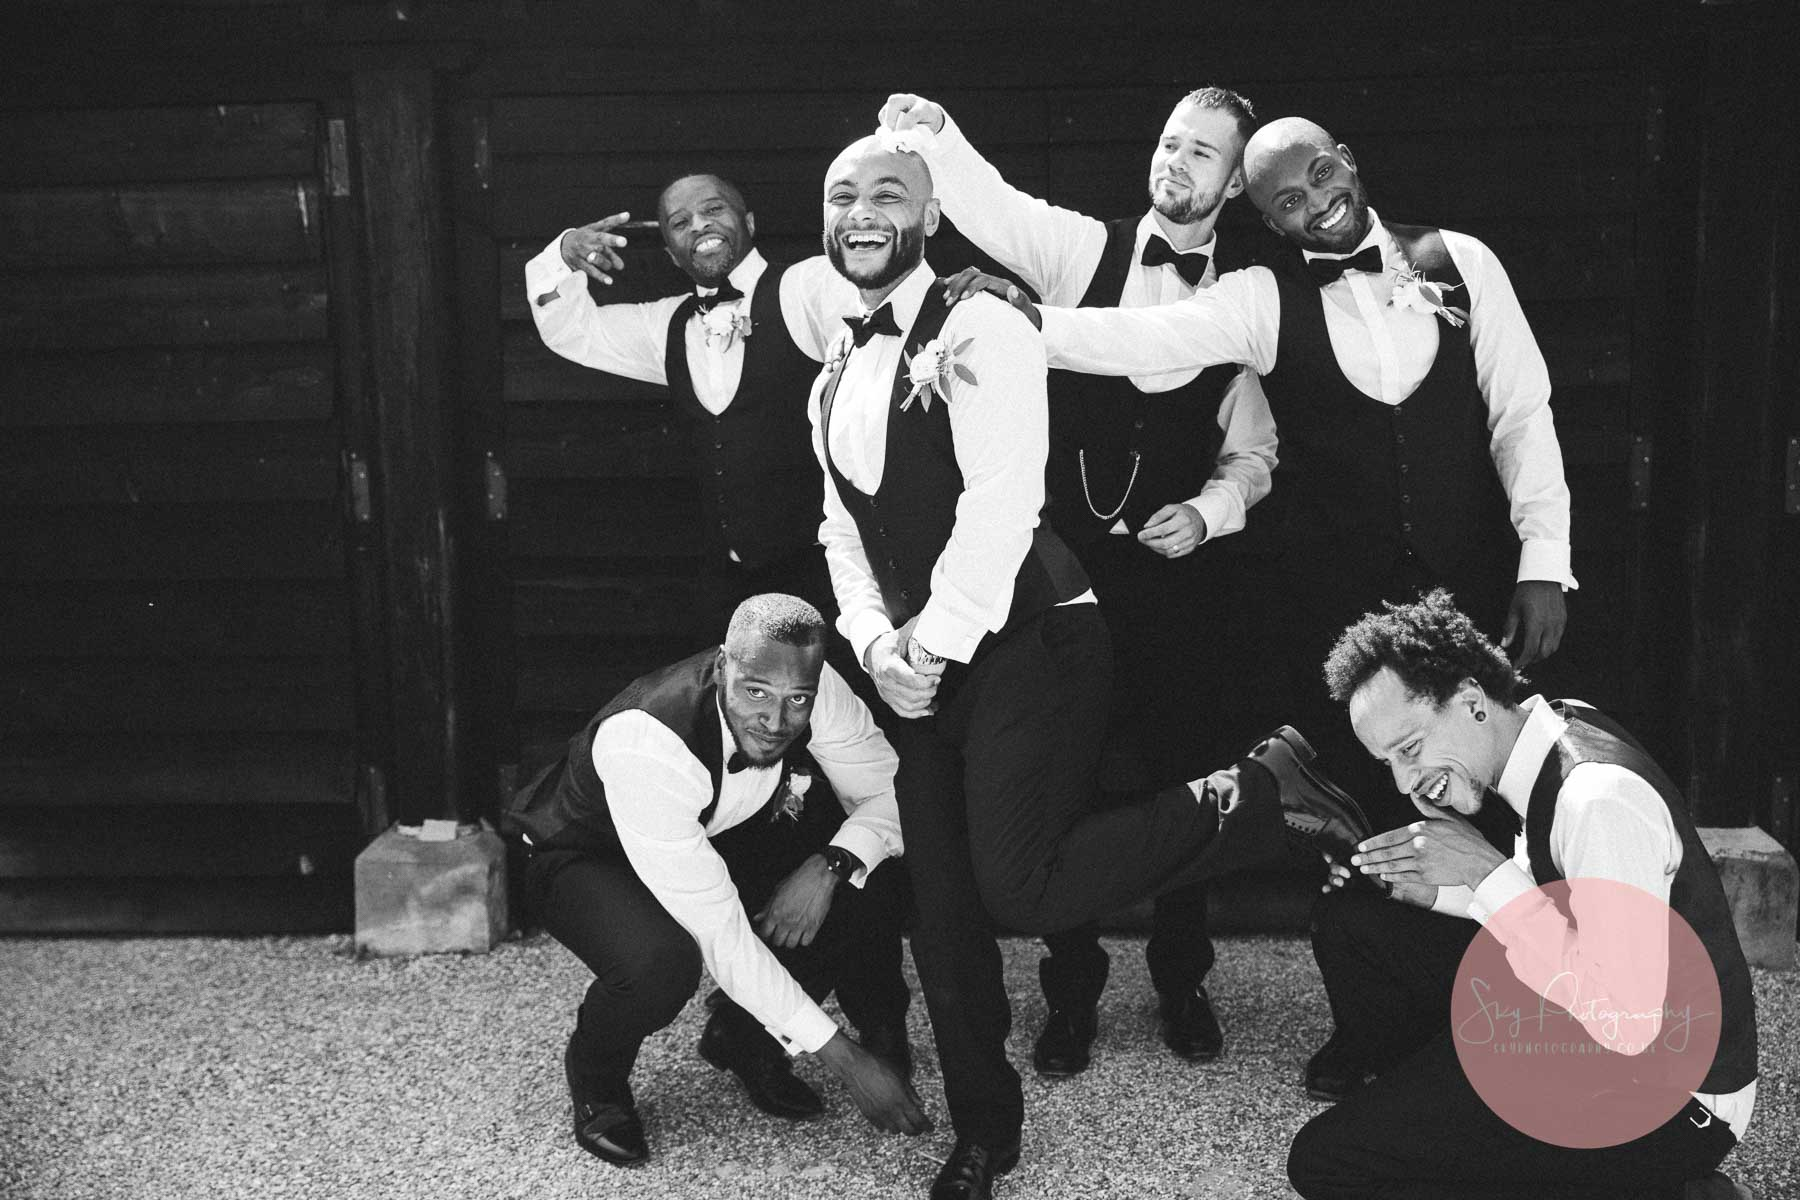 groomsmen play with the groom